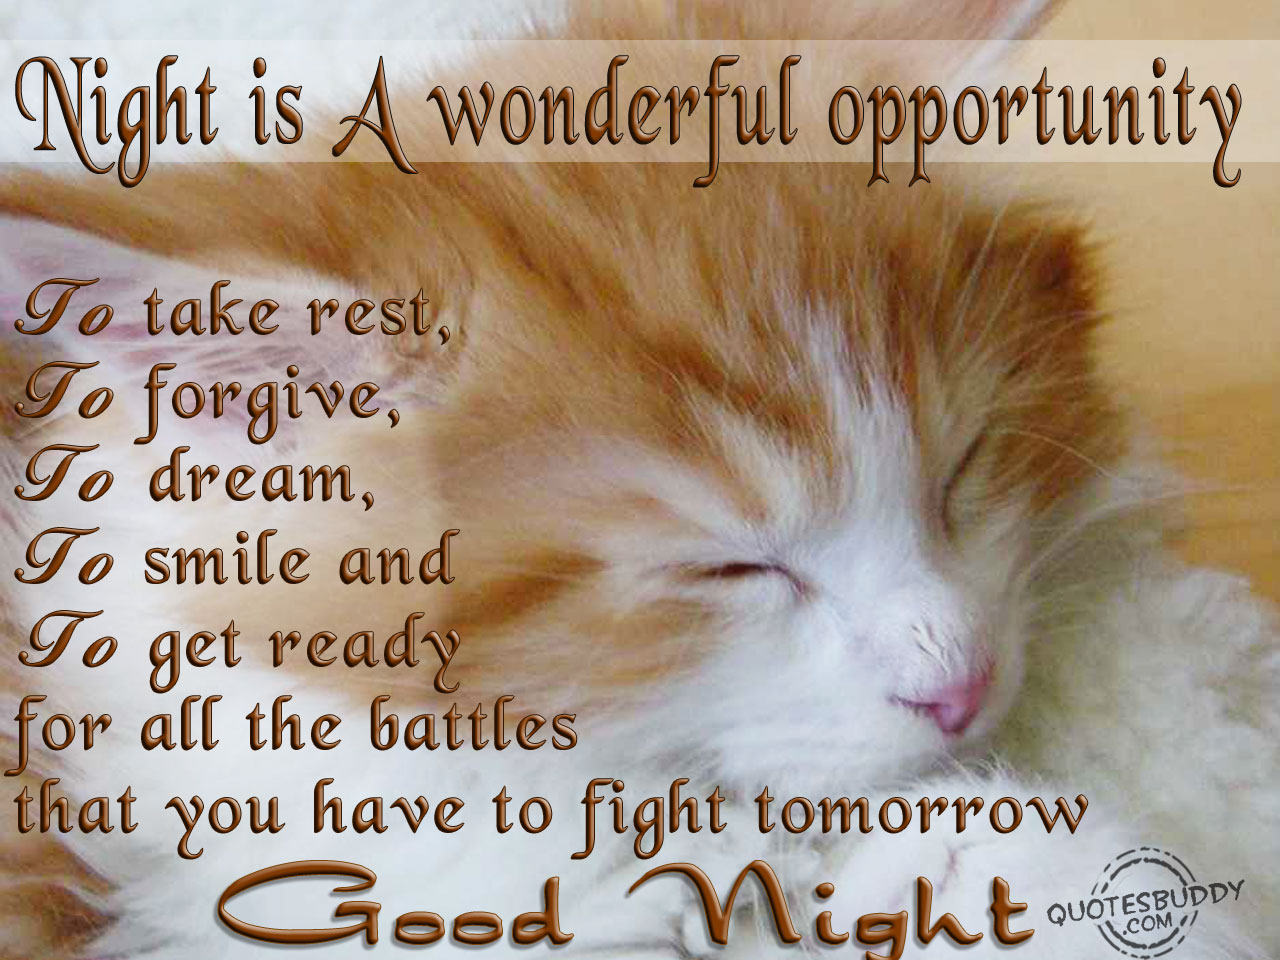 night-is-a-wonderful-opportunity-to-take-restto-forgiveto-dreamto-smile-and-to-get-ready-for-all-the-battles-that-you-have-to-fight-tomorrow-good-night-quote